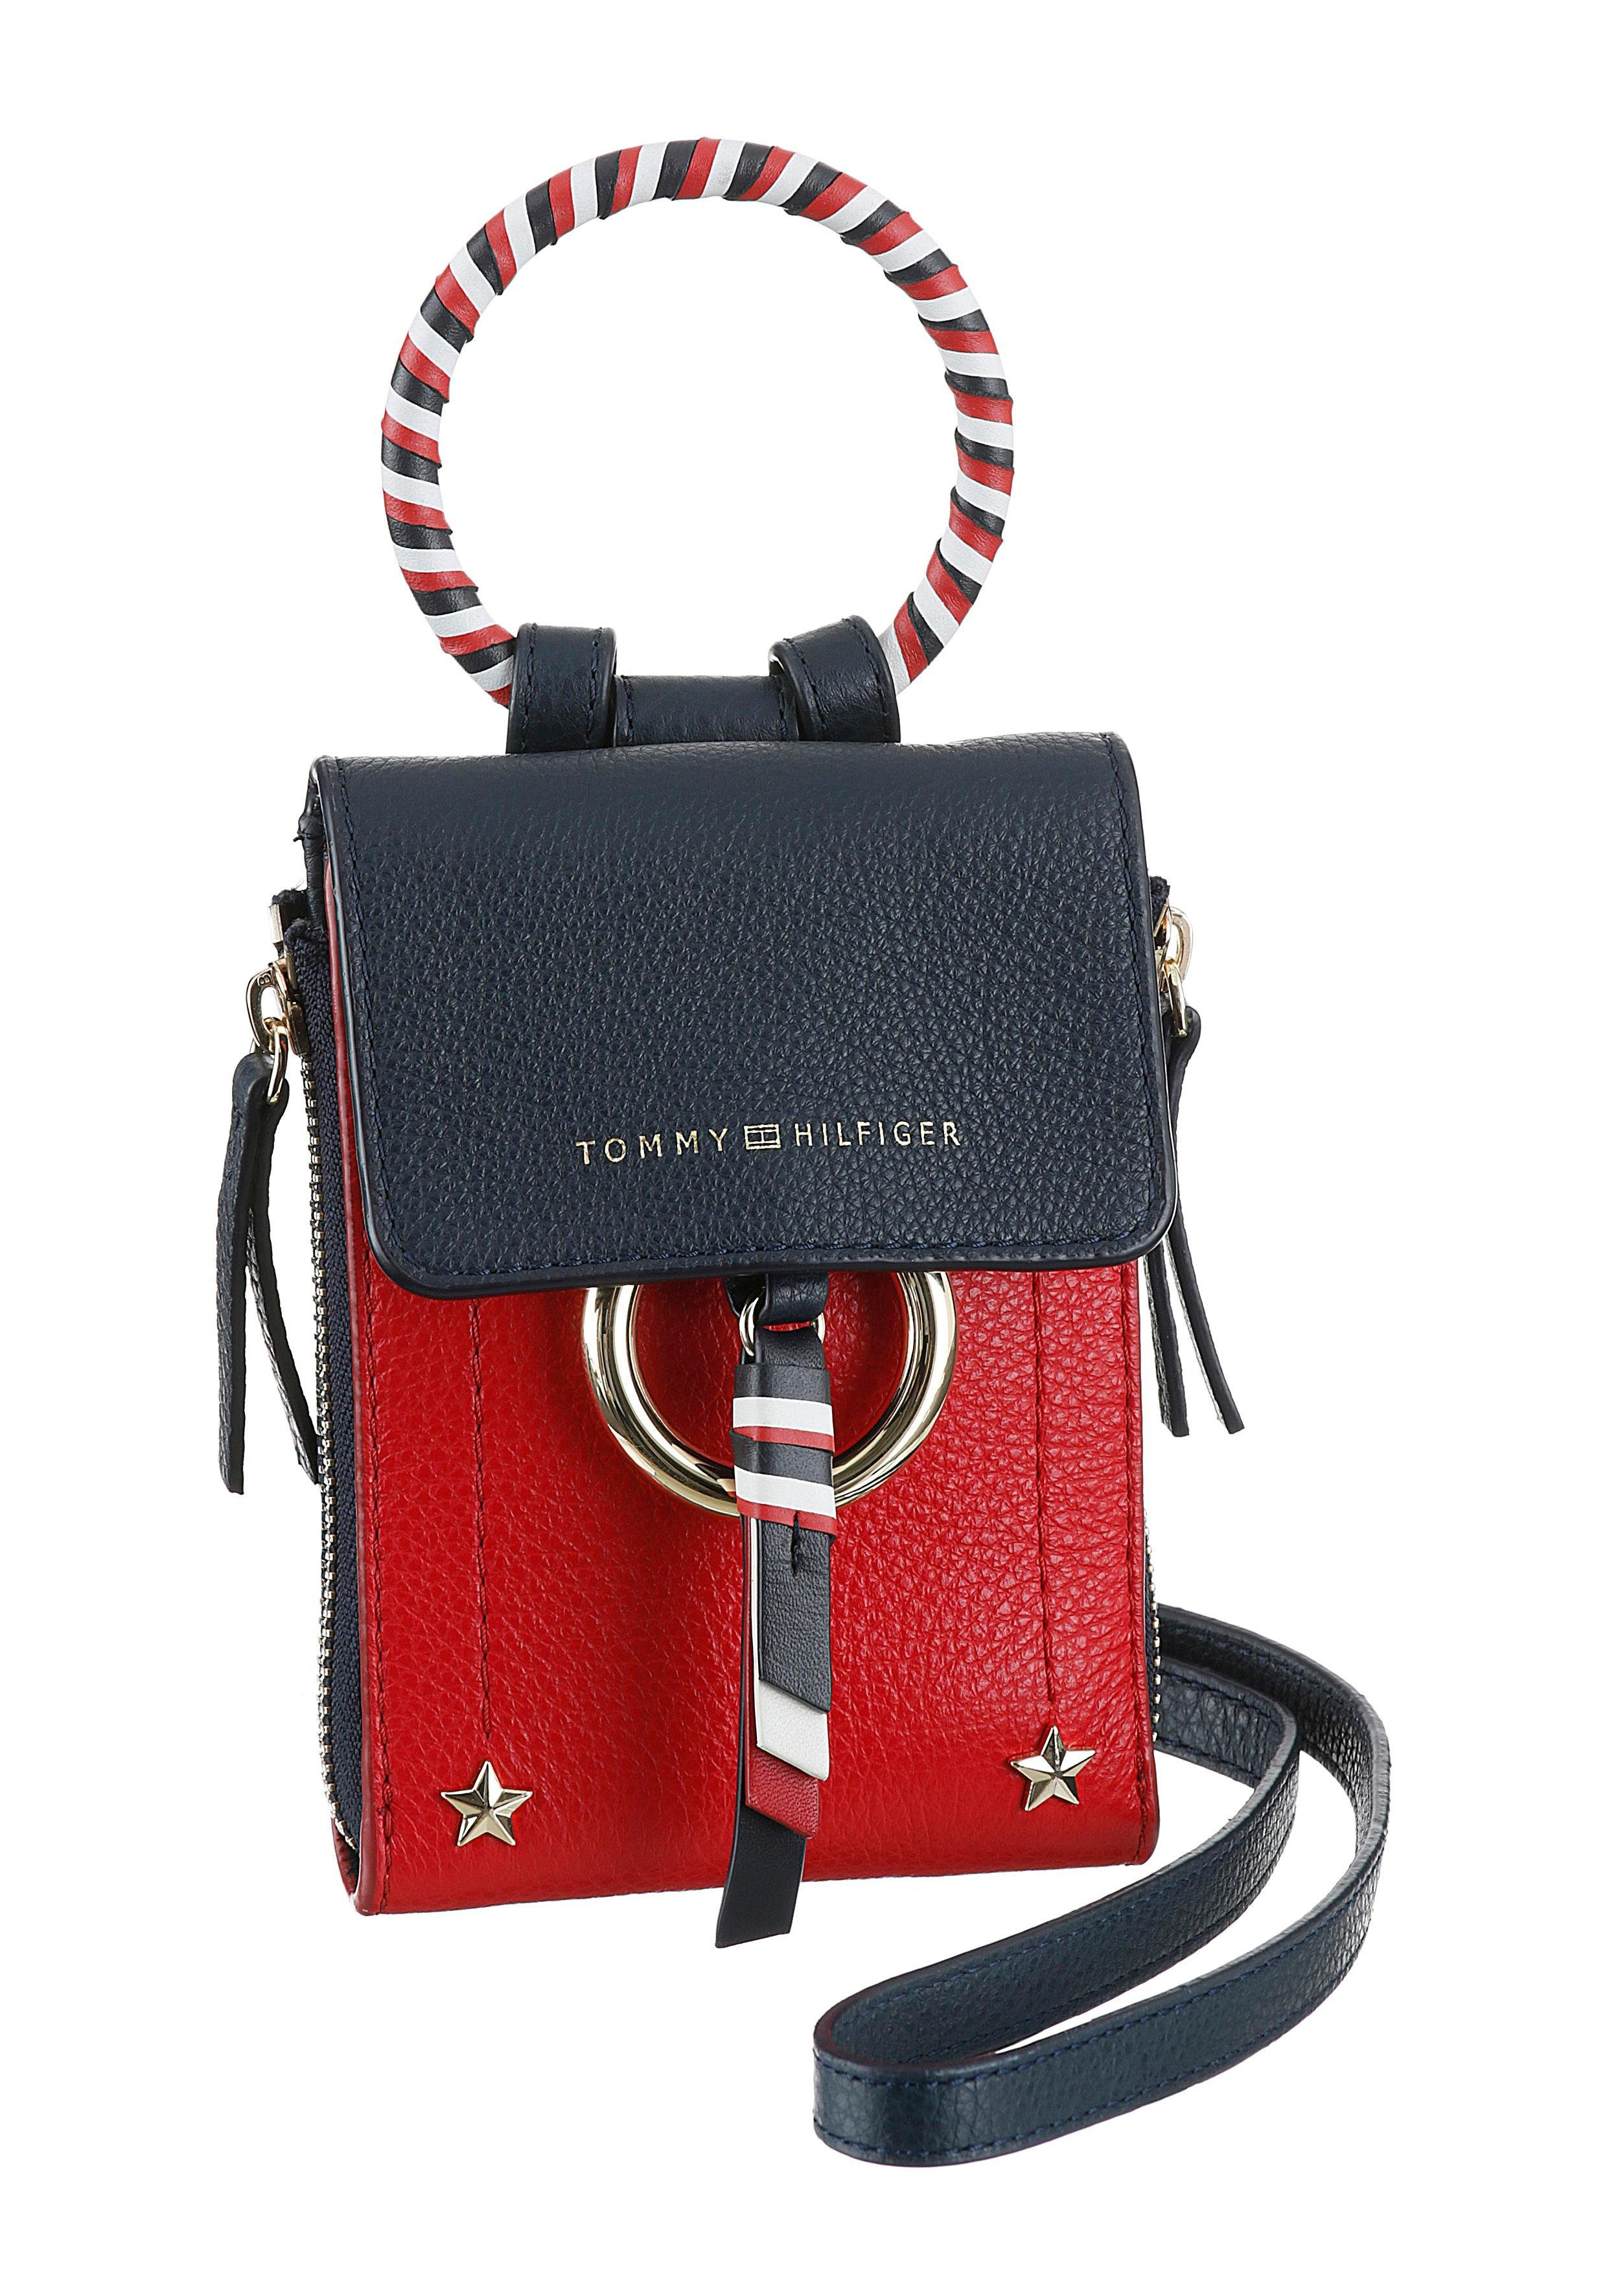 TOMMY HILFIGER Mini Bag »HERITAGE LEATHER MINI OVER«, modische Mini Bag